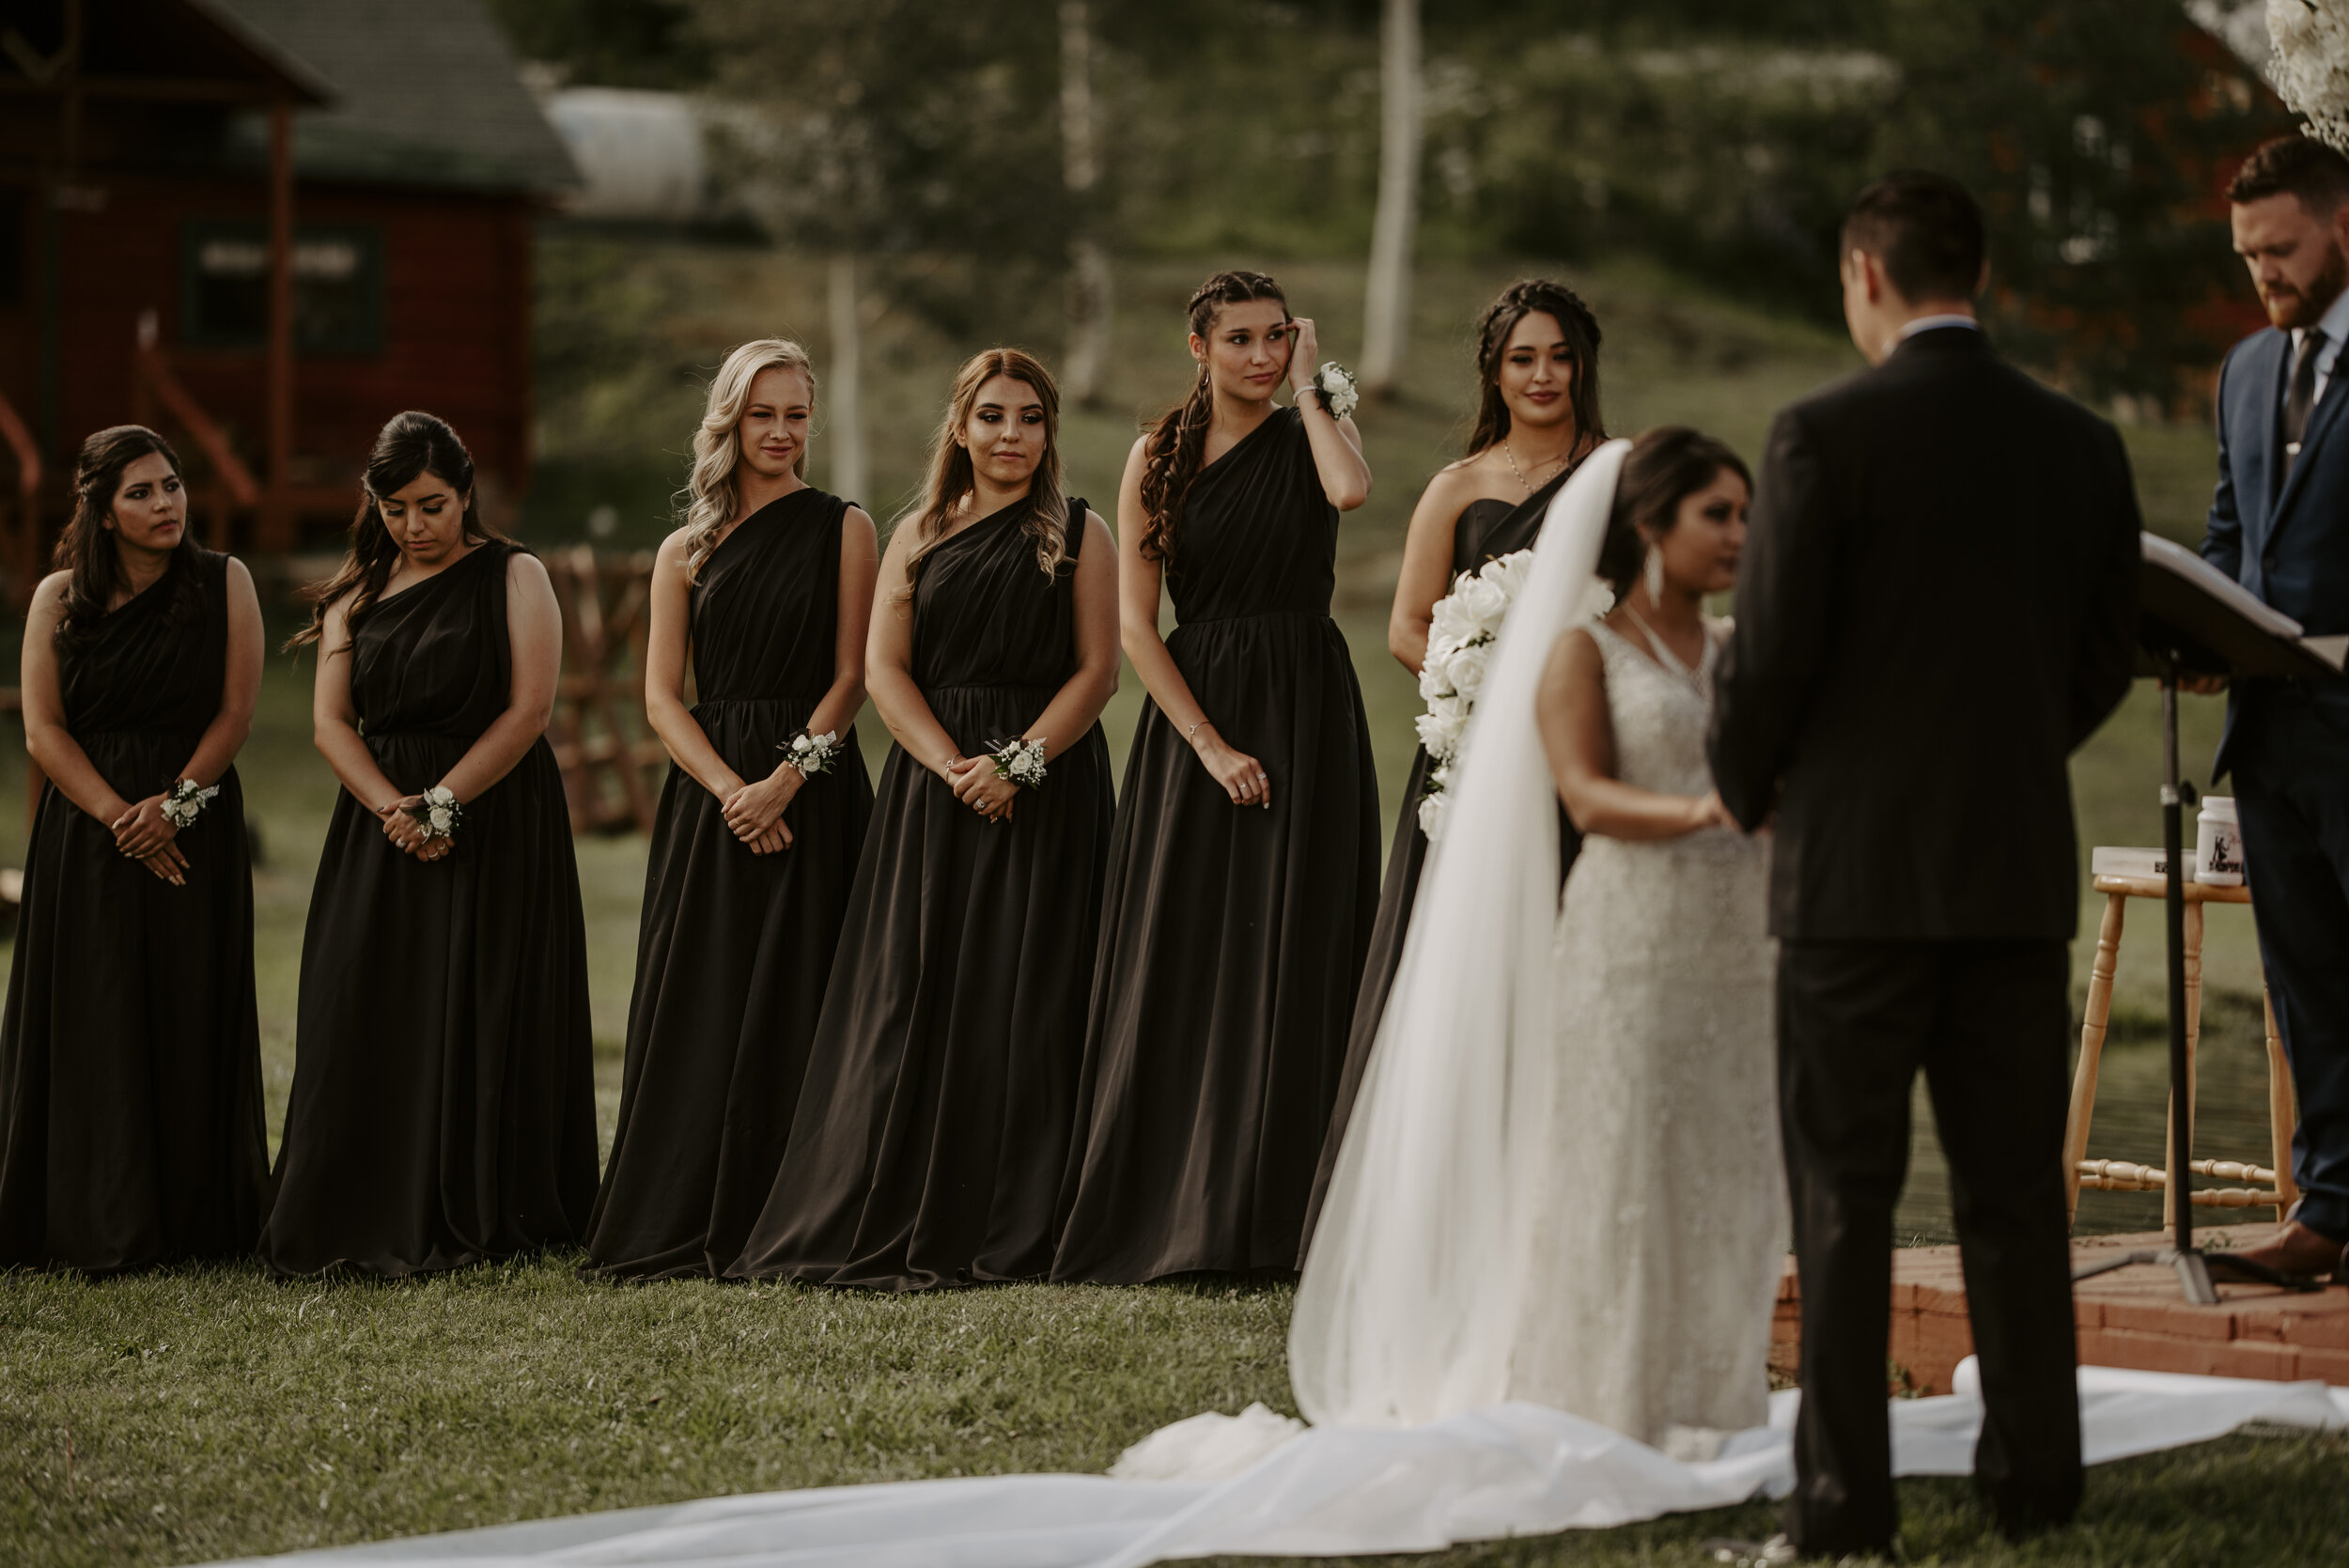 coulter_lake_wedding_ceremony_50.jpg